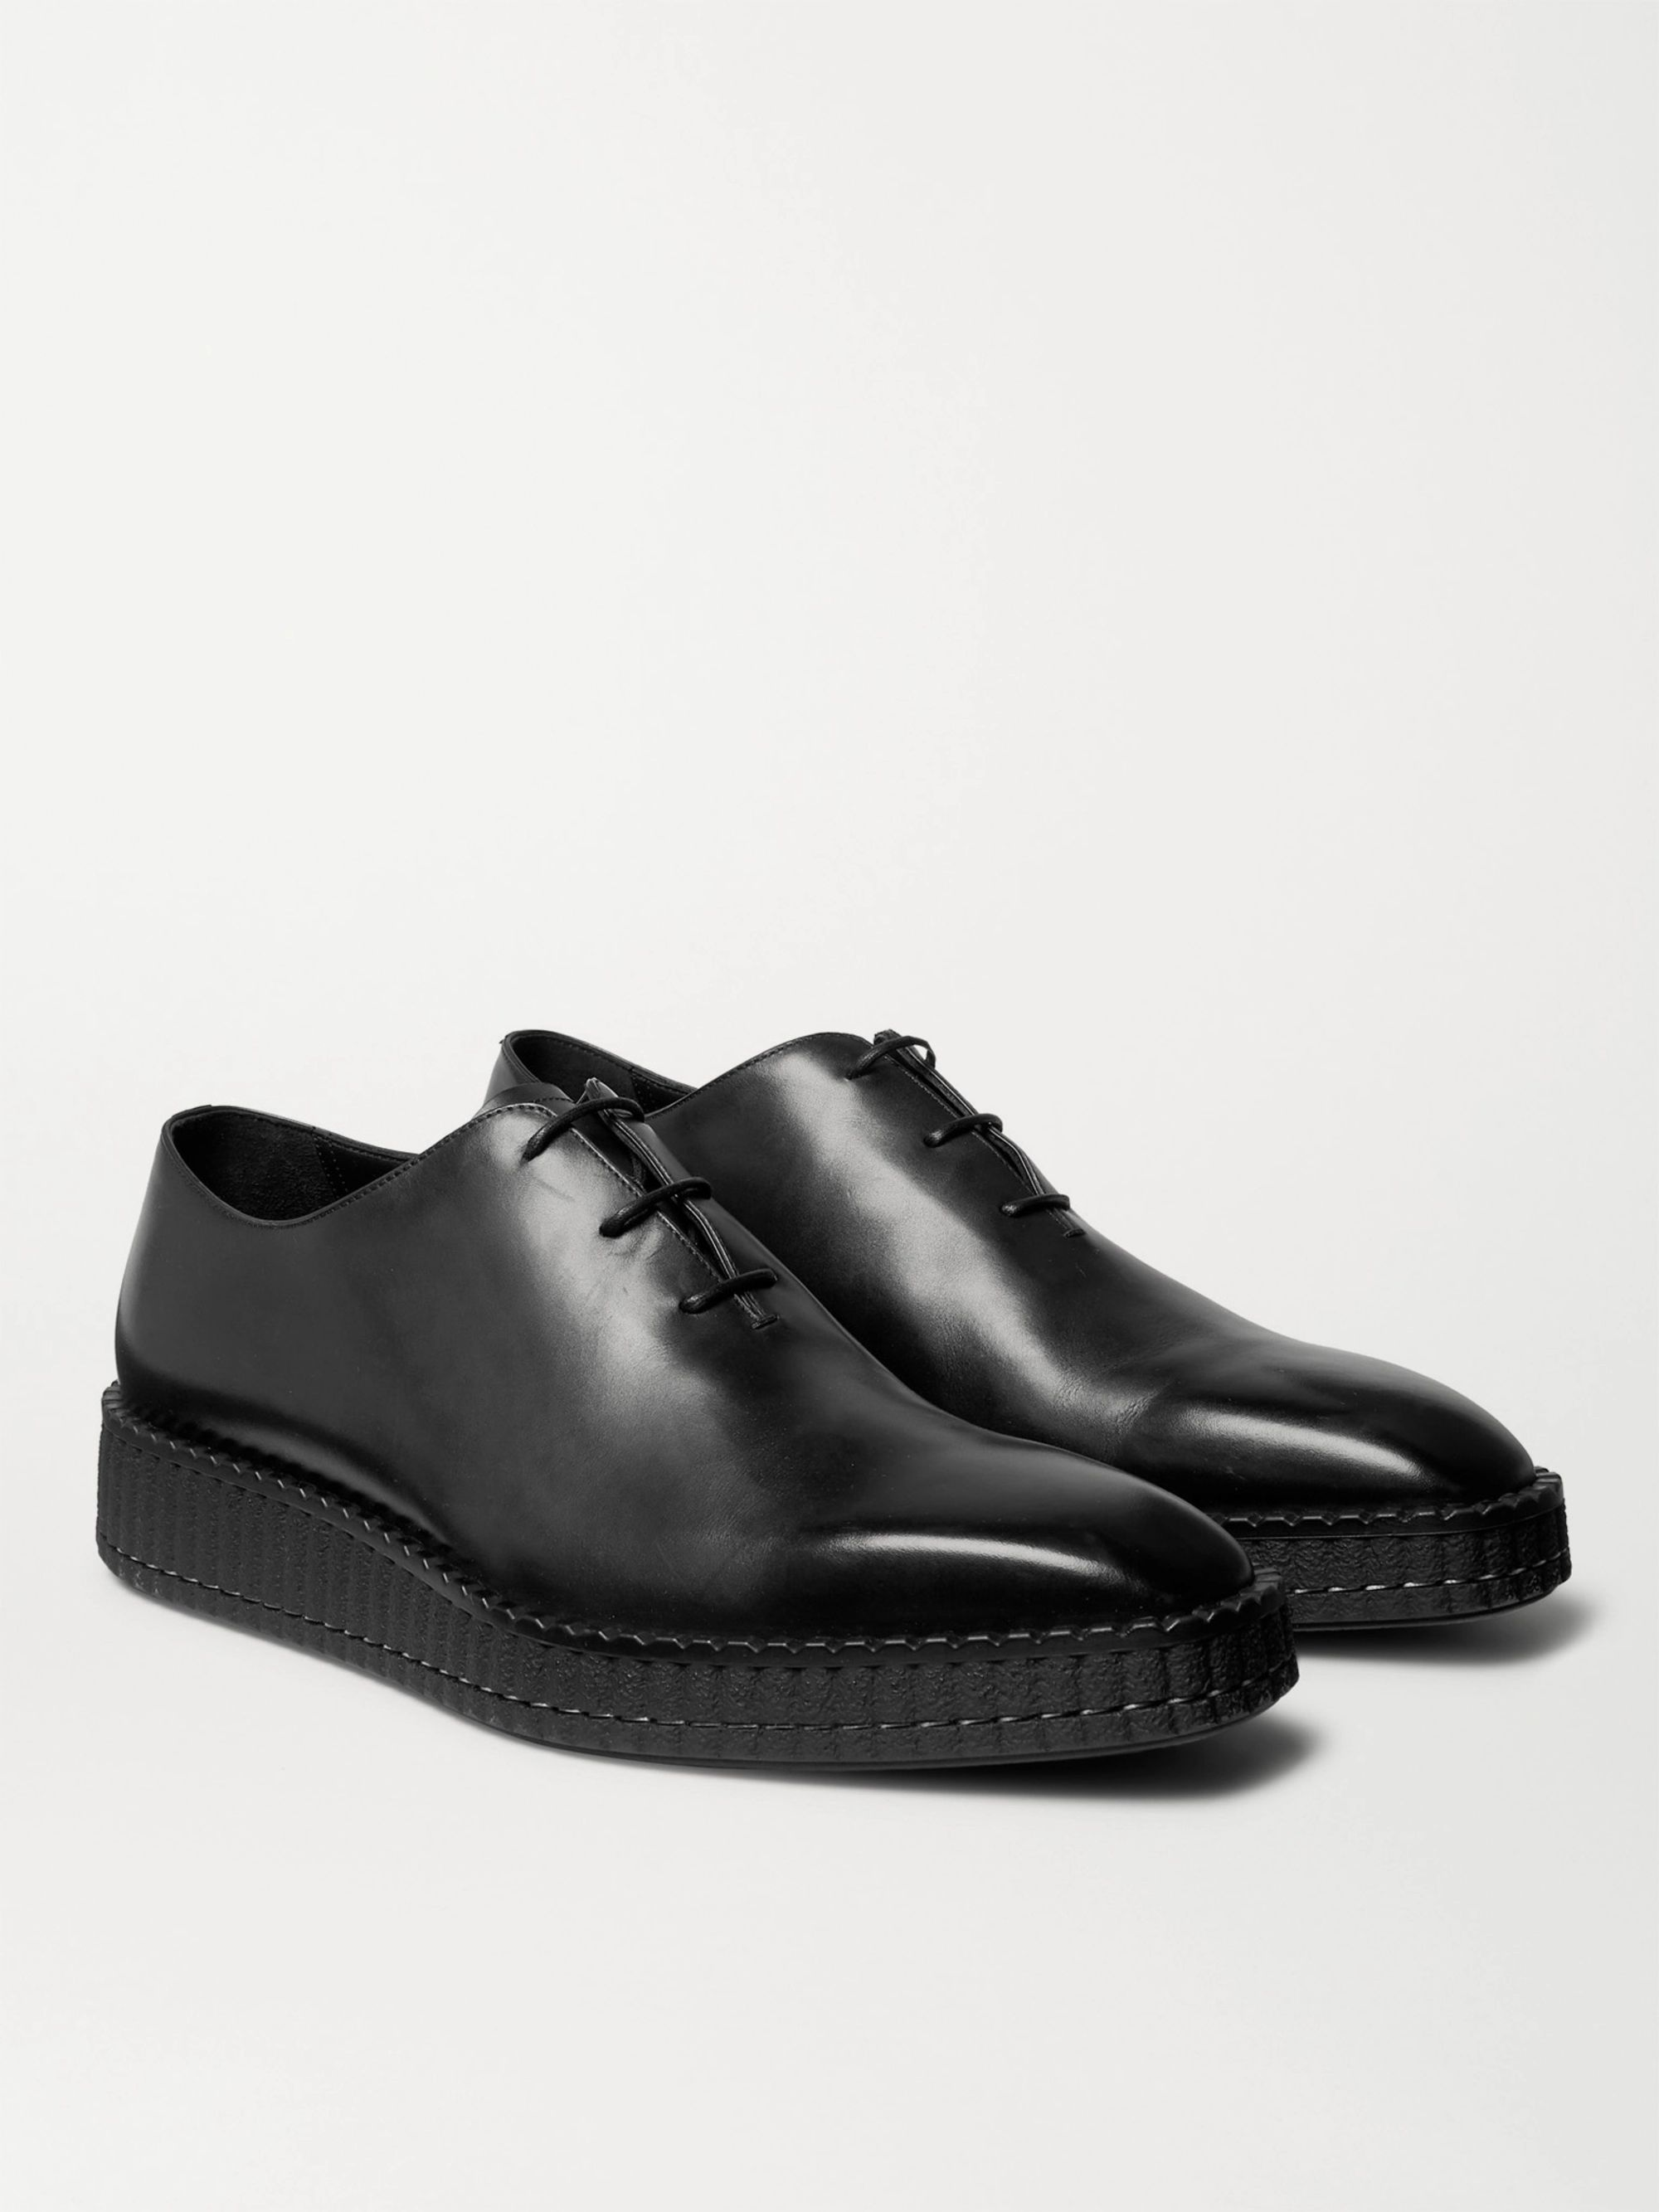 Berluti Alessandro Exaggerated-Sole Leather Oxford Shoes